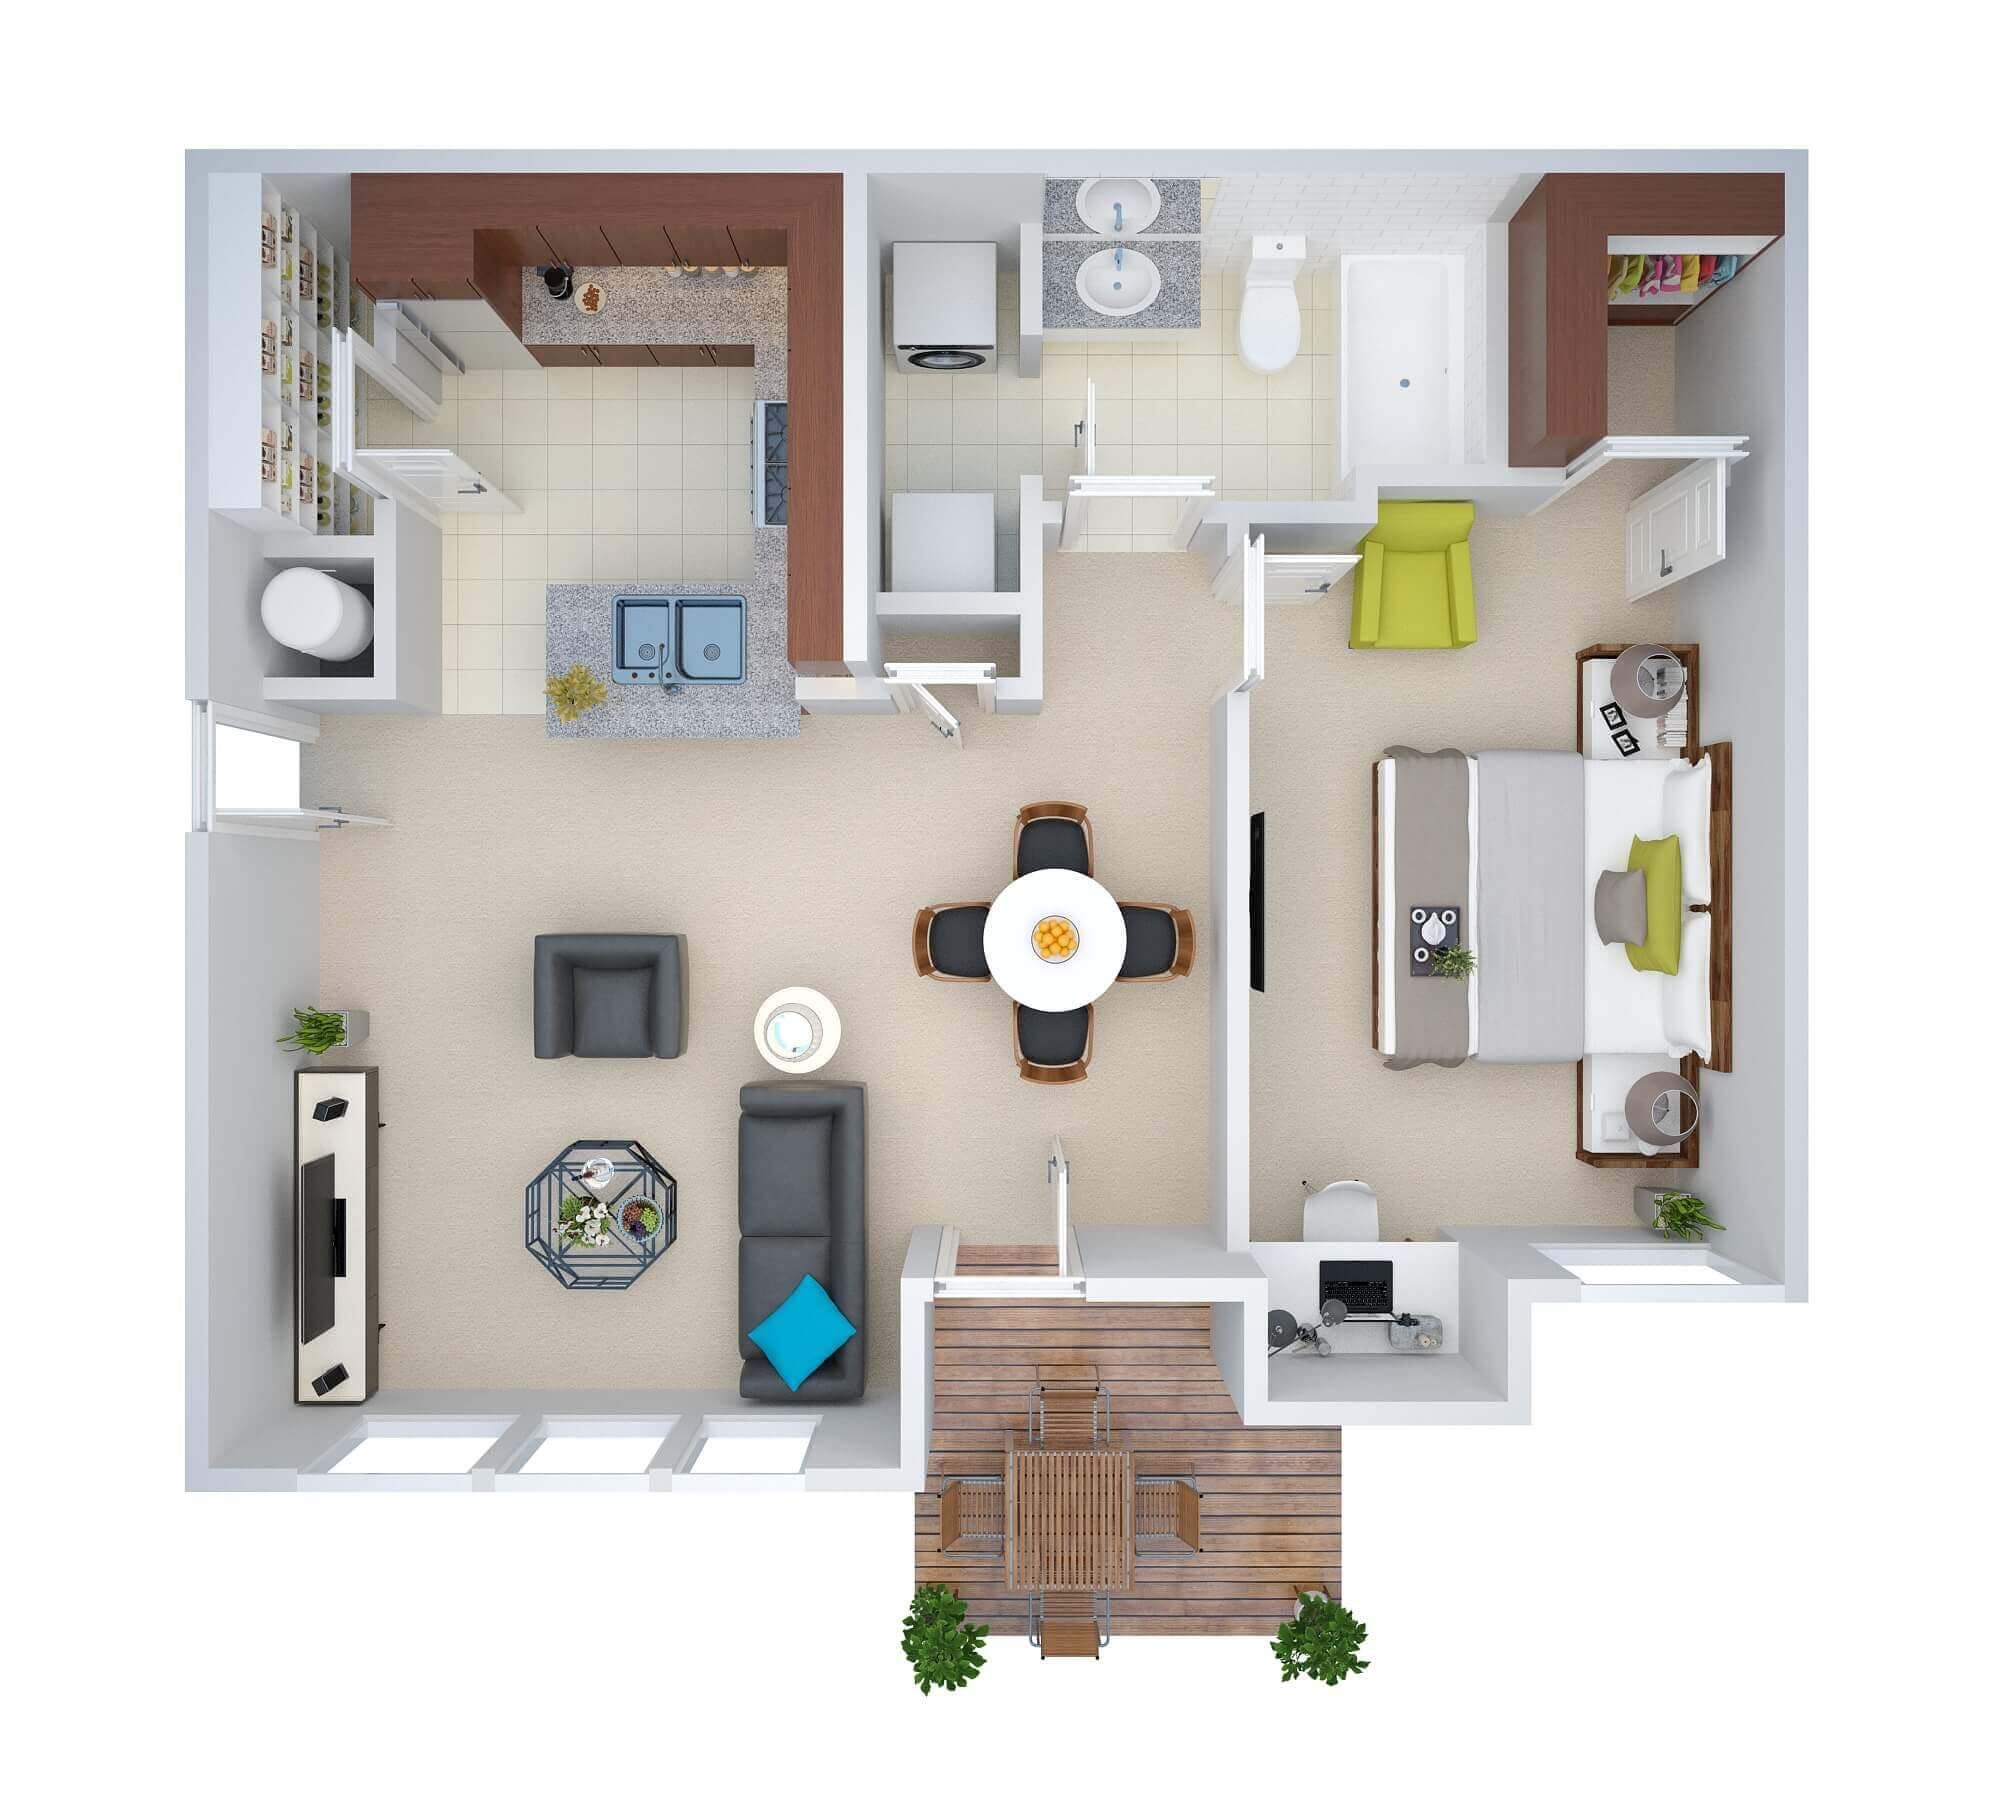 Floor Plan for Real Estate Introduce 3D Floor Plan Rendering